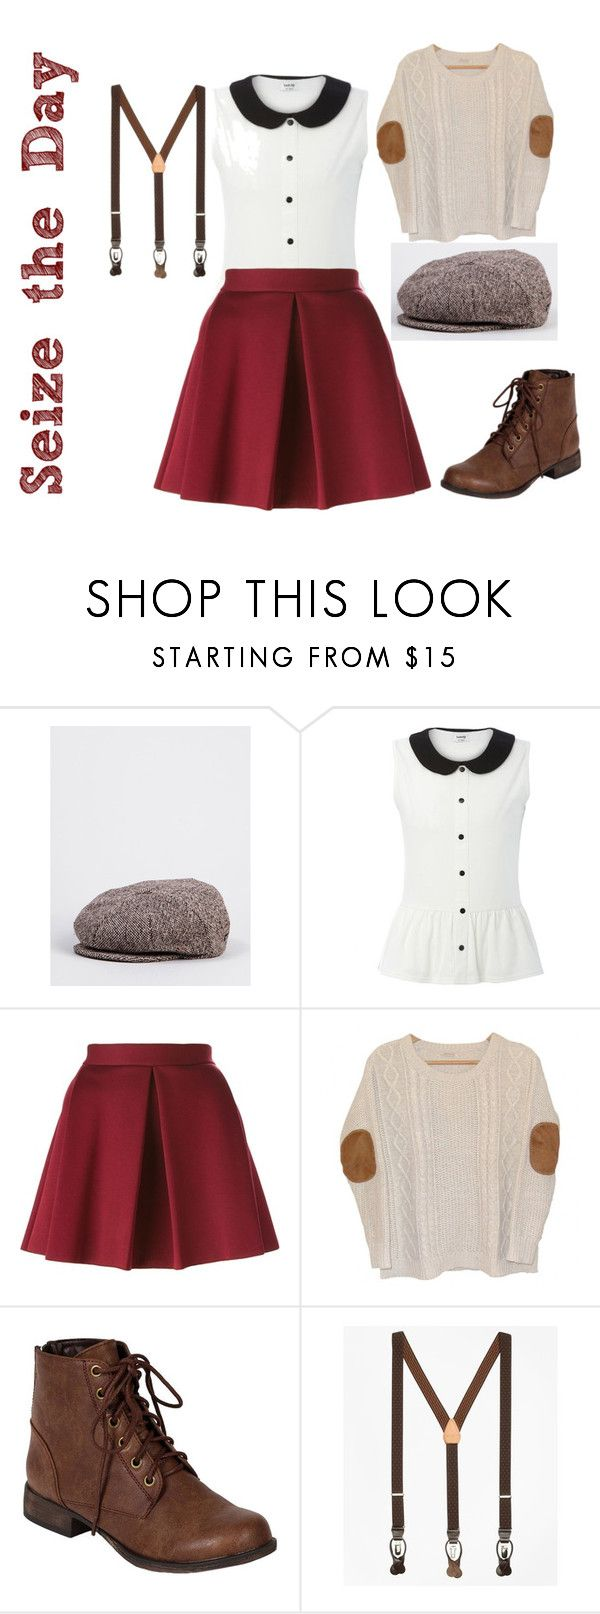 """Headlines don't sell papes. Newsies sell papes."" by bethanunny ❤ liked on Polyvore featuring Bailey, P.A.R.O.S.H., Urban Outfitters, Breckelle's, Brooks Brothers, disney, newsies and broadway"